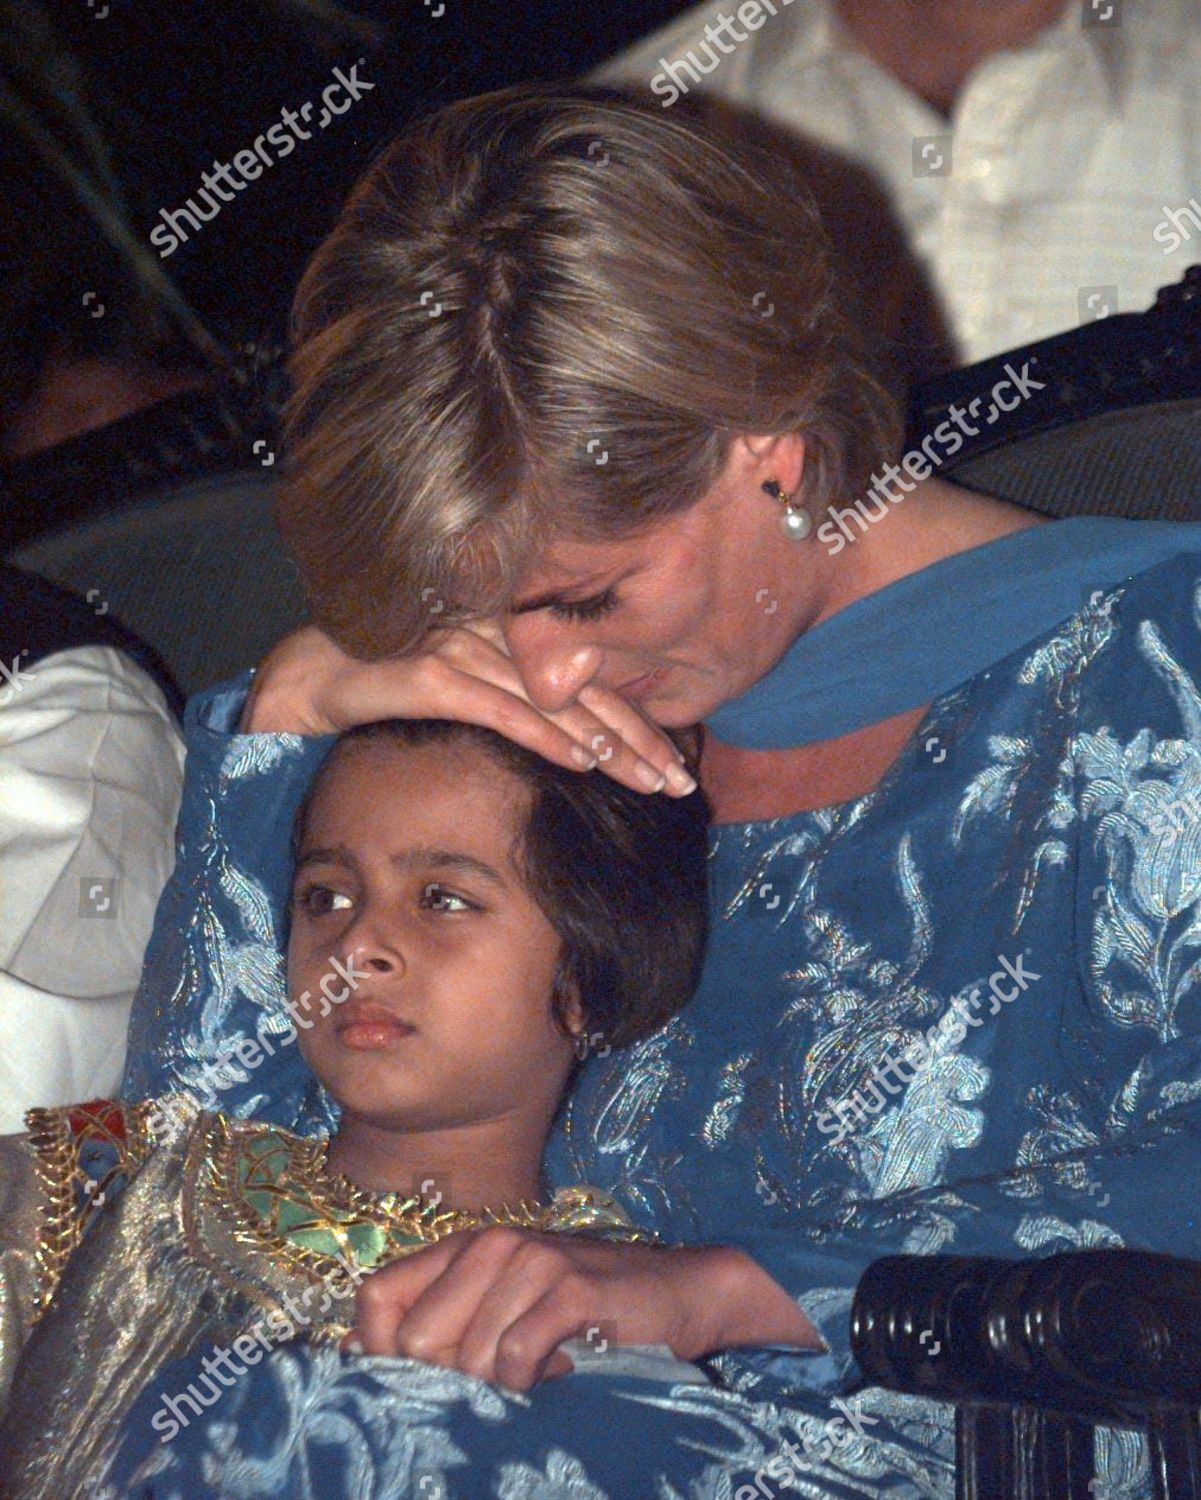 princess diana cuddles young girl imran khans editorial stock photo stock image shutterstock https www shutterstock com editorial image editorial princess diana cuddles a young girl at girl at imran khans cancer hospitalpic mike forster 867304a